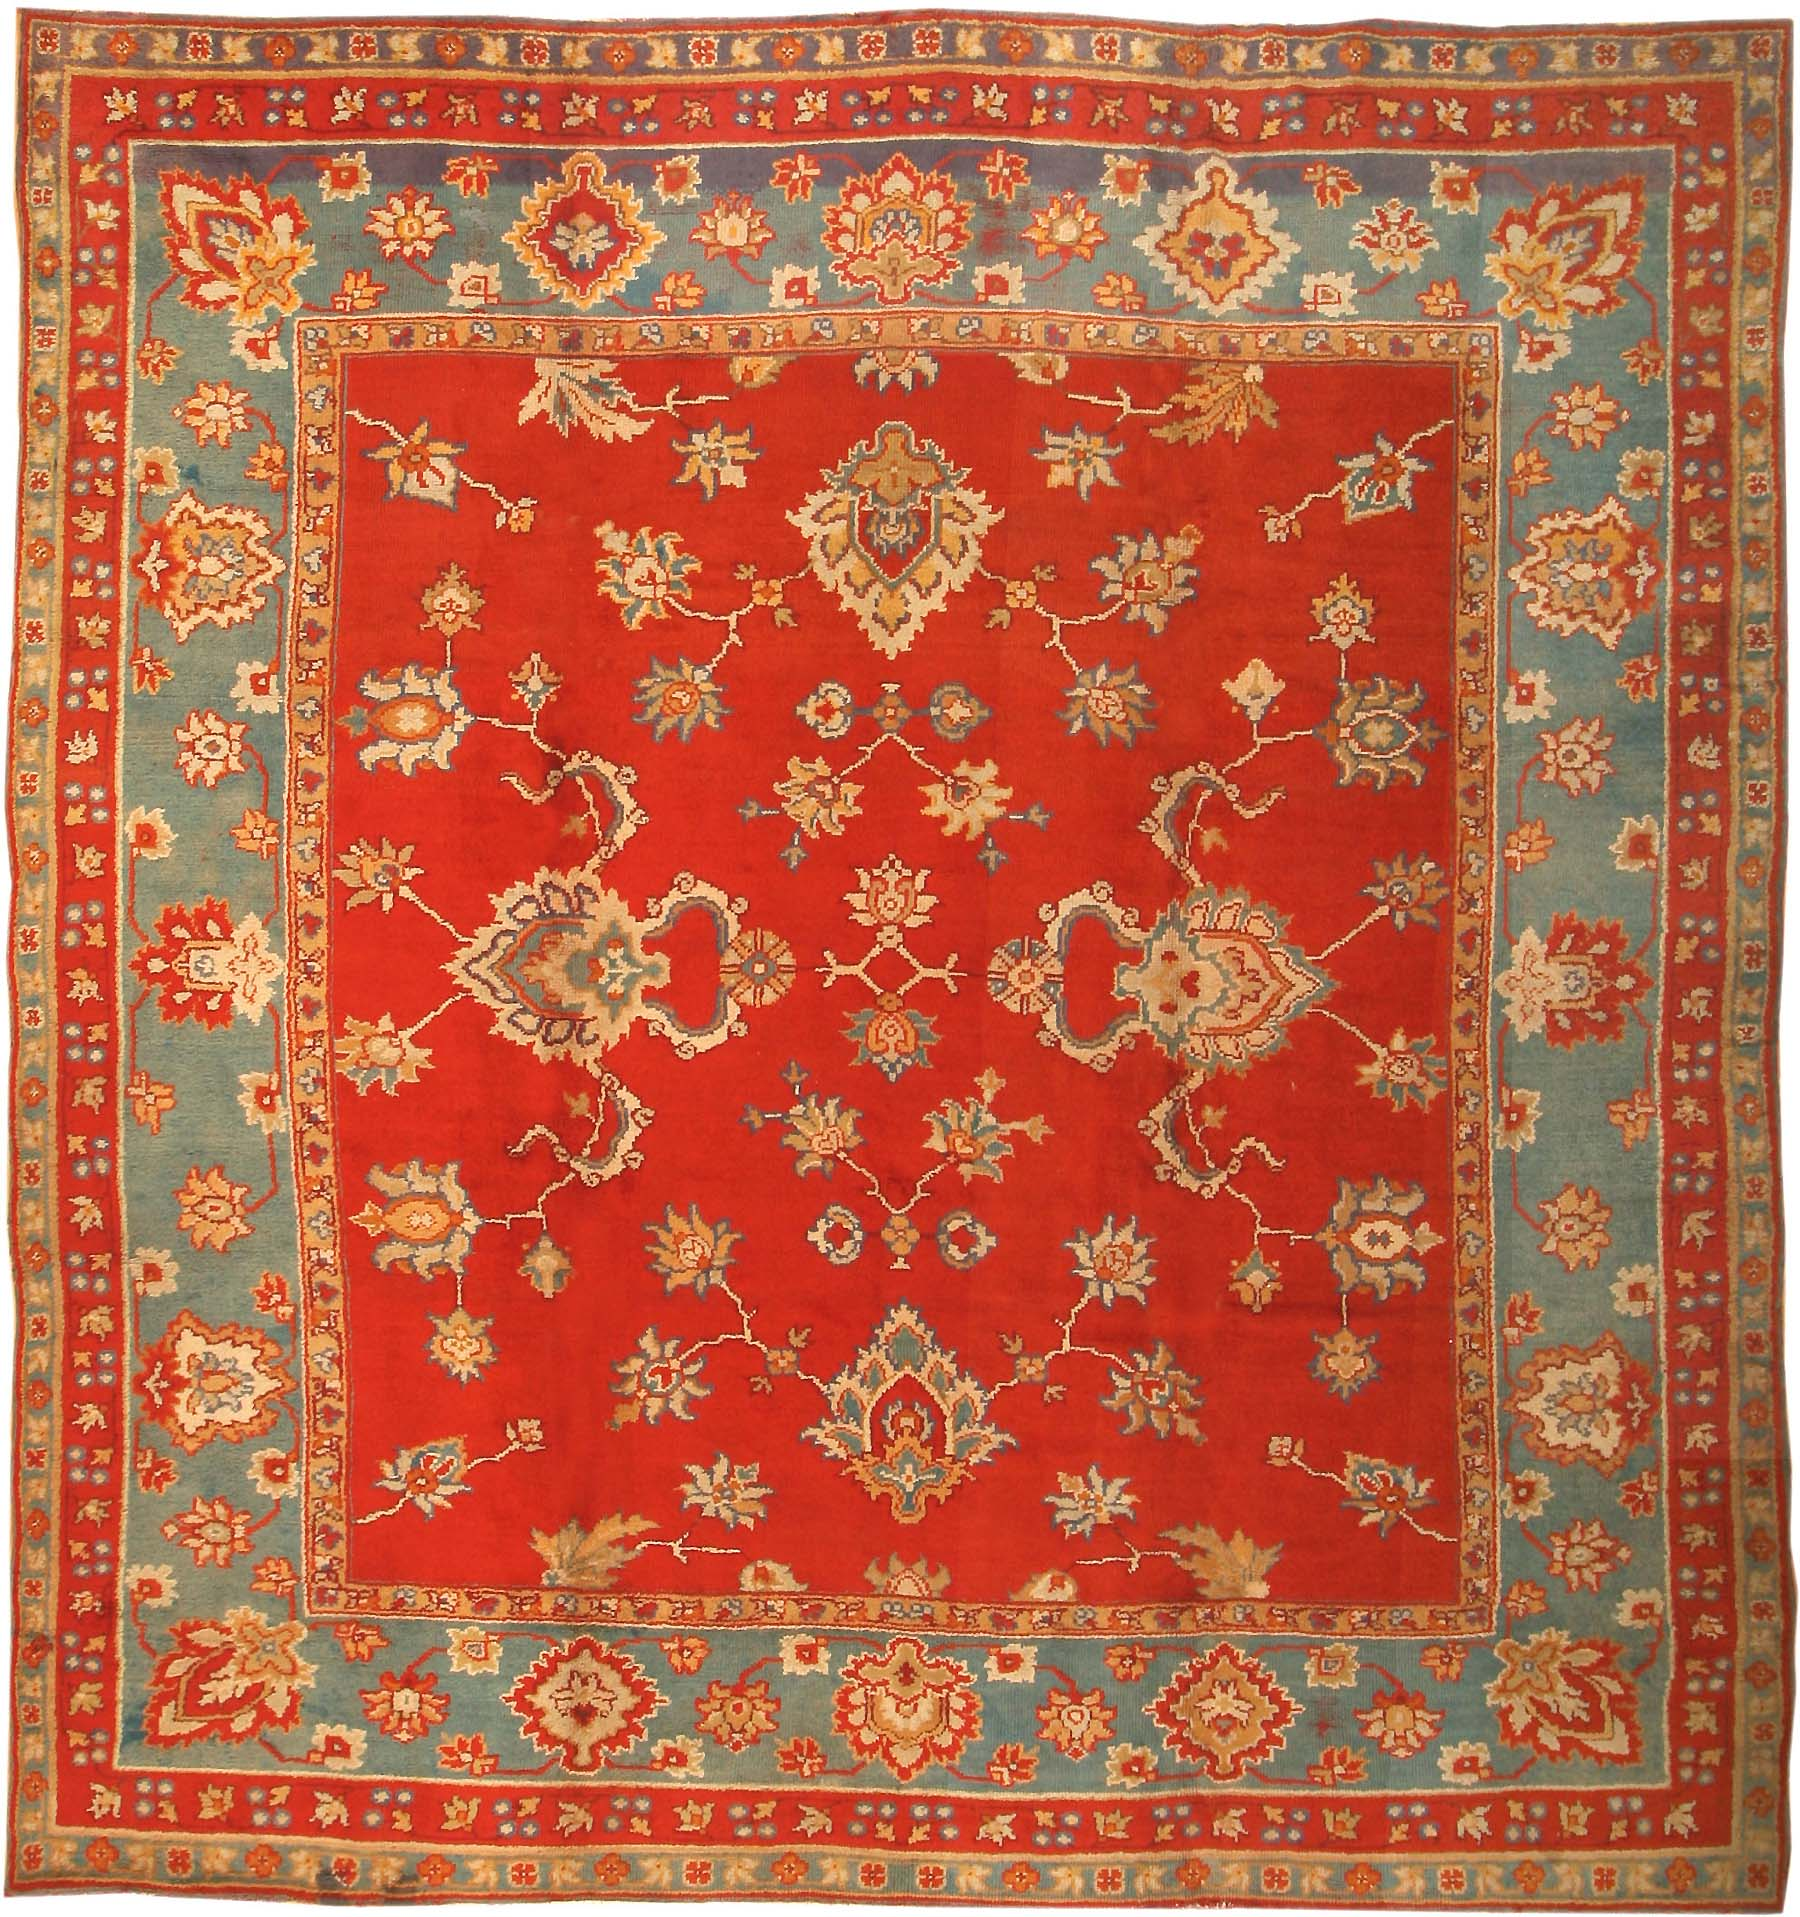 Antique Donegal Irish Rug 3328 For Sale